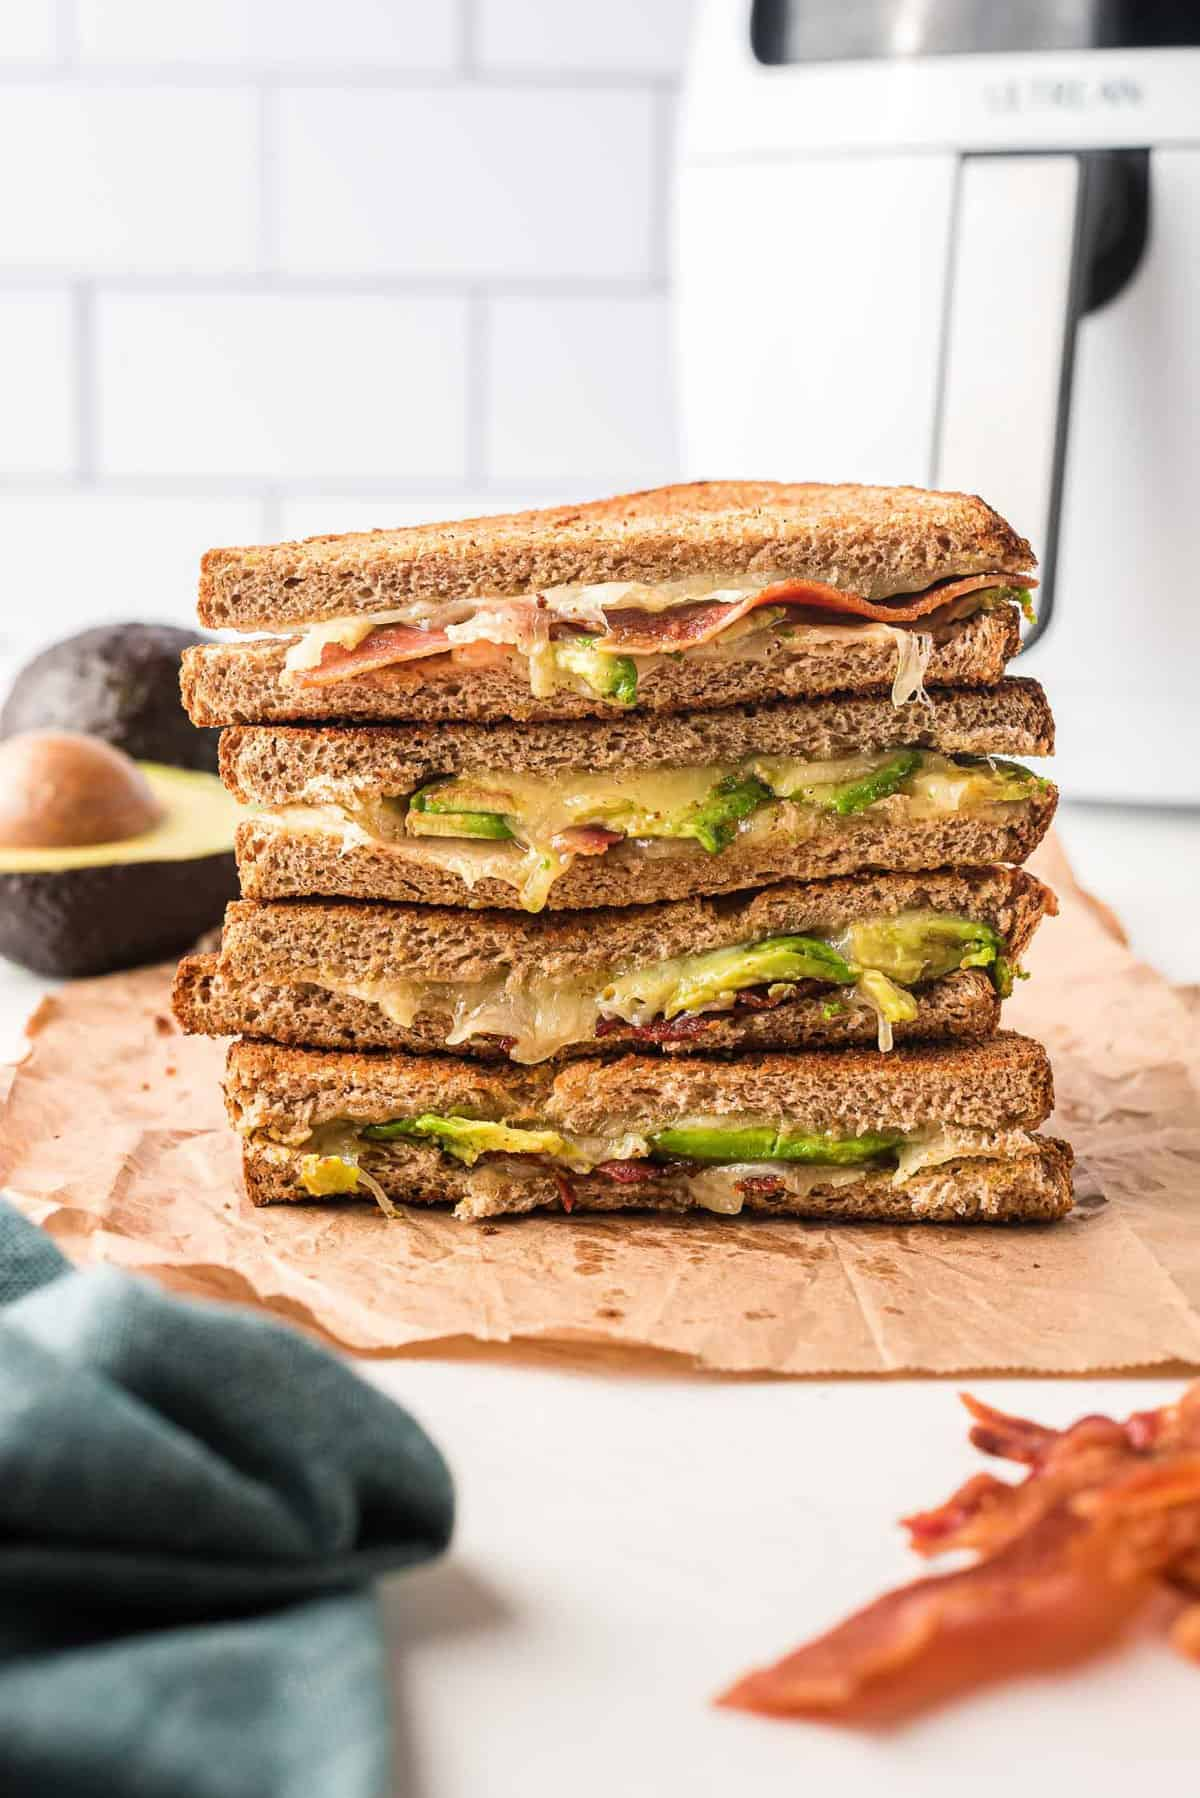 Stacked sandwich halves filled with bacon, avocado, and melted cheese.